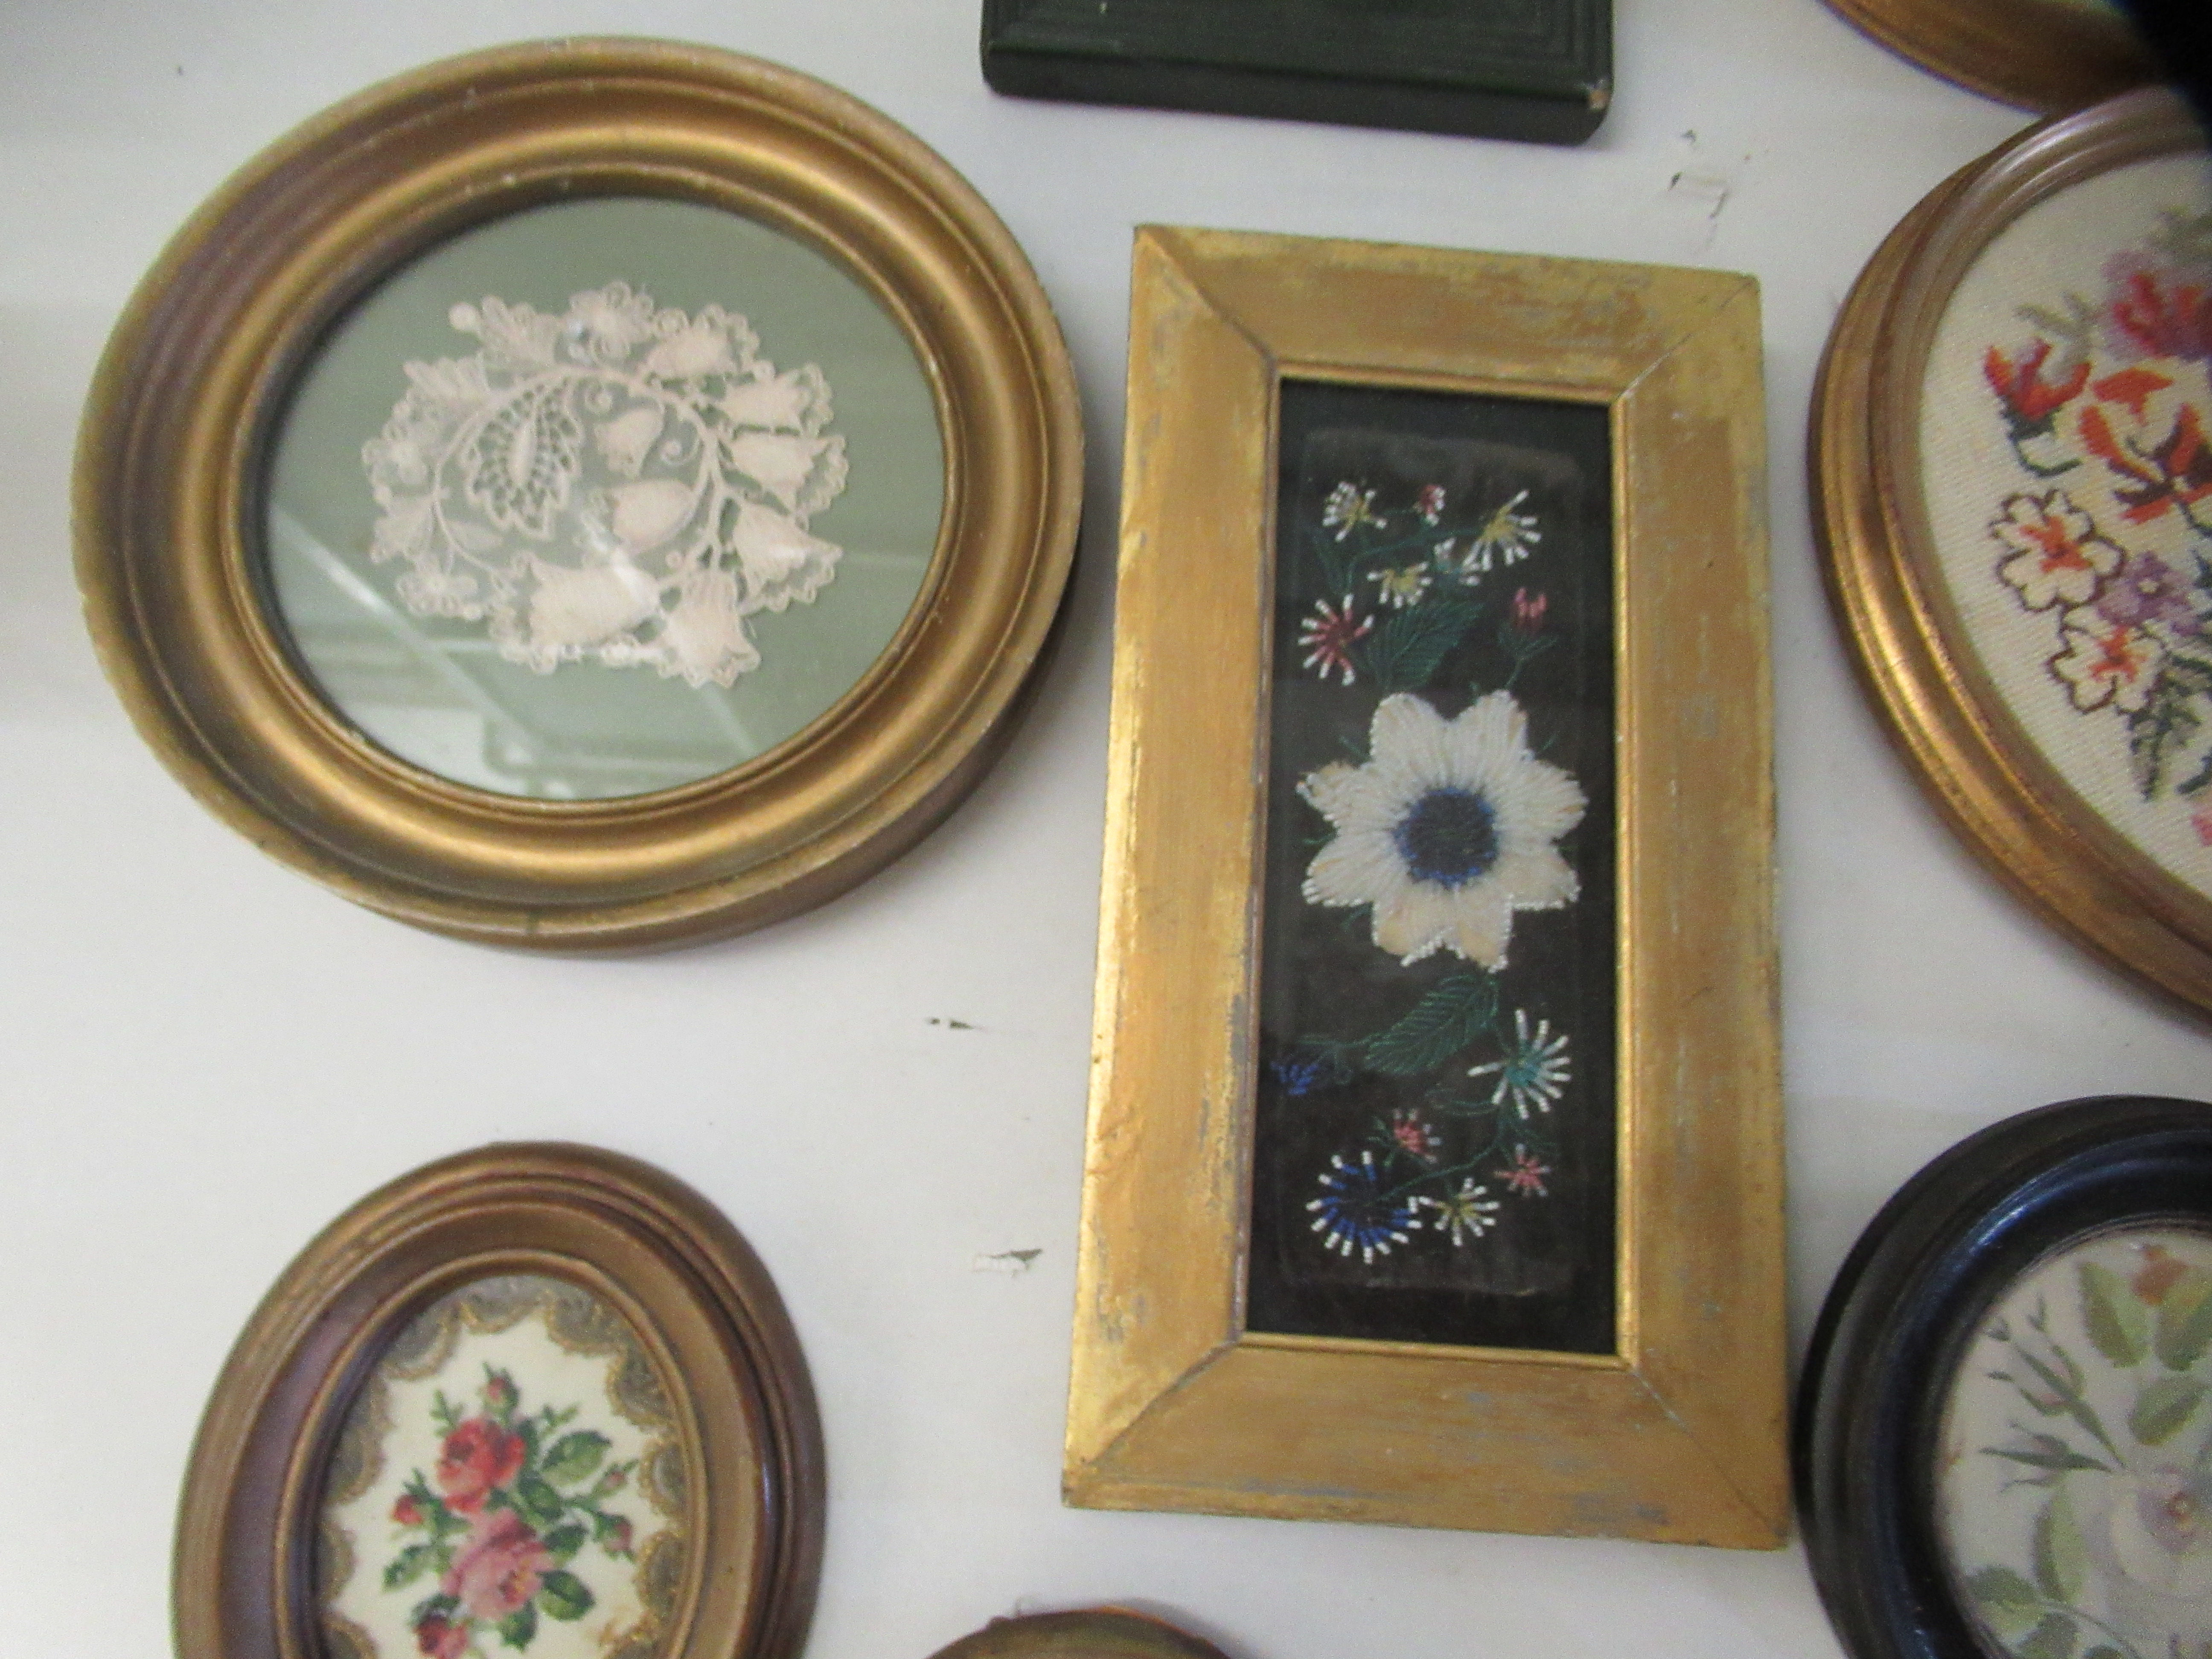 19th and 20thC embroidered tapestry panels various designs & sizes framed - Image 3 of 7